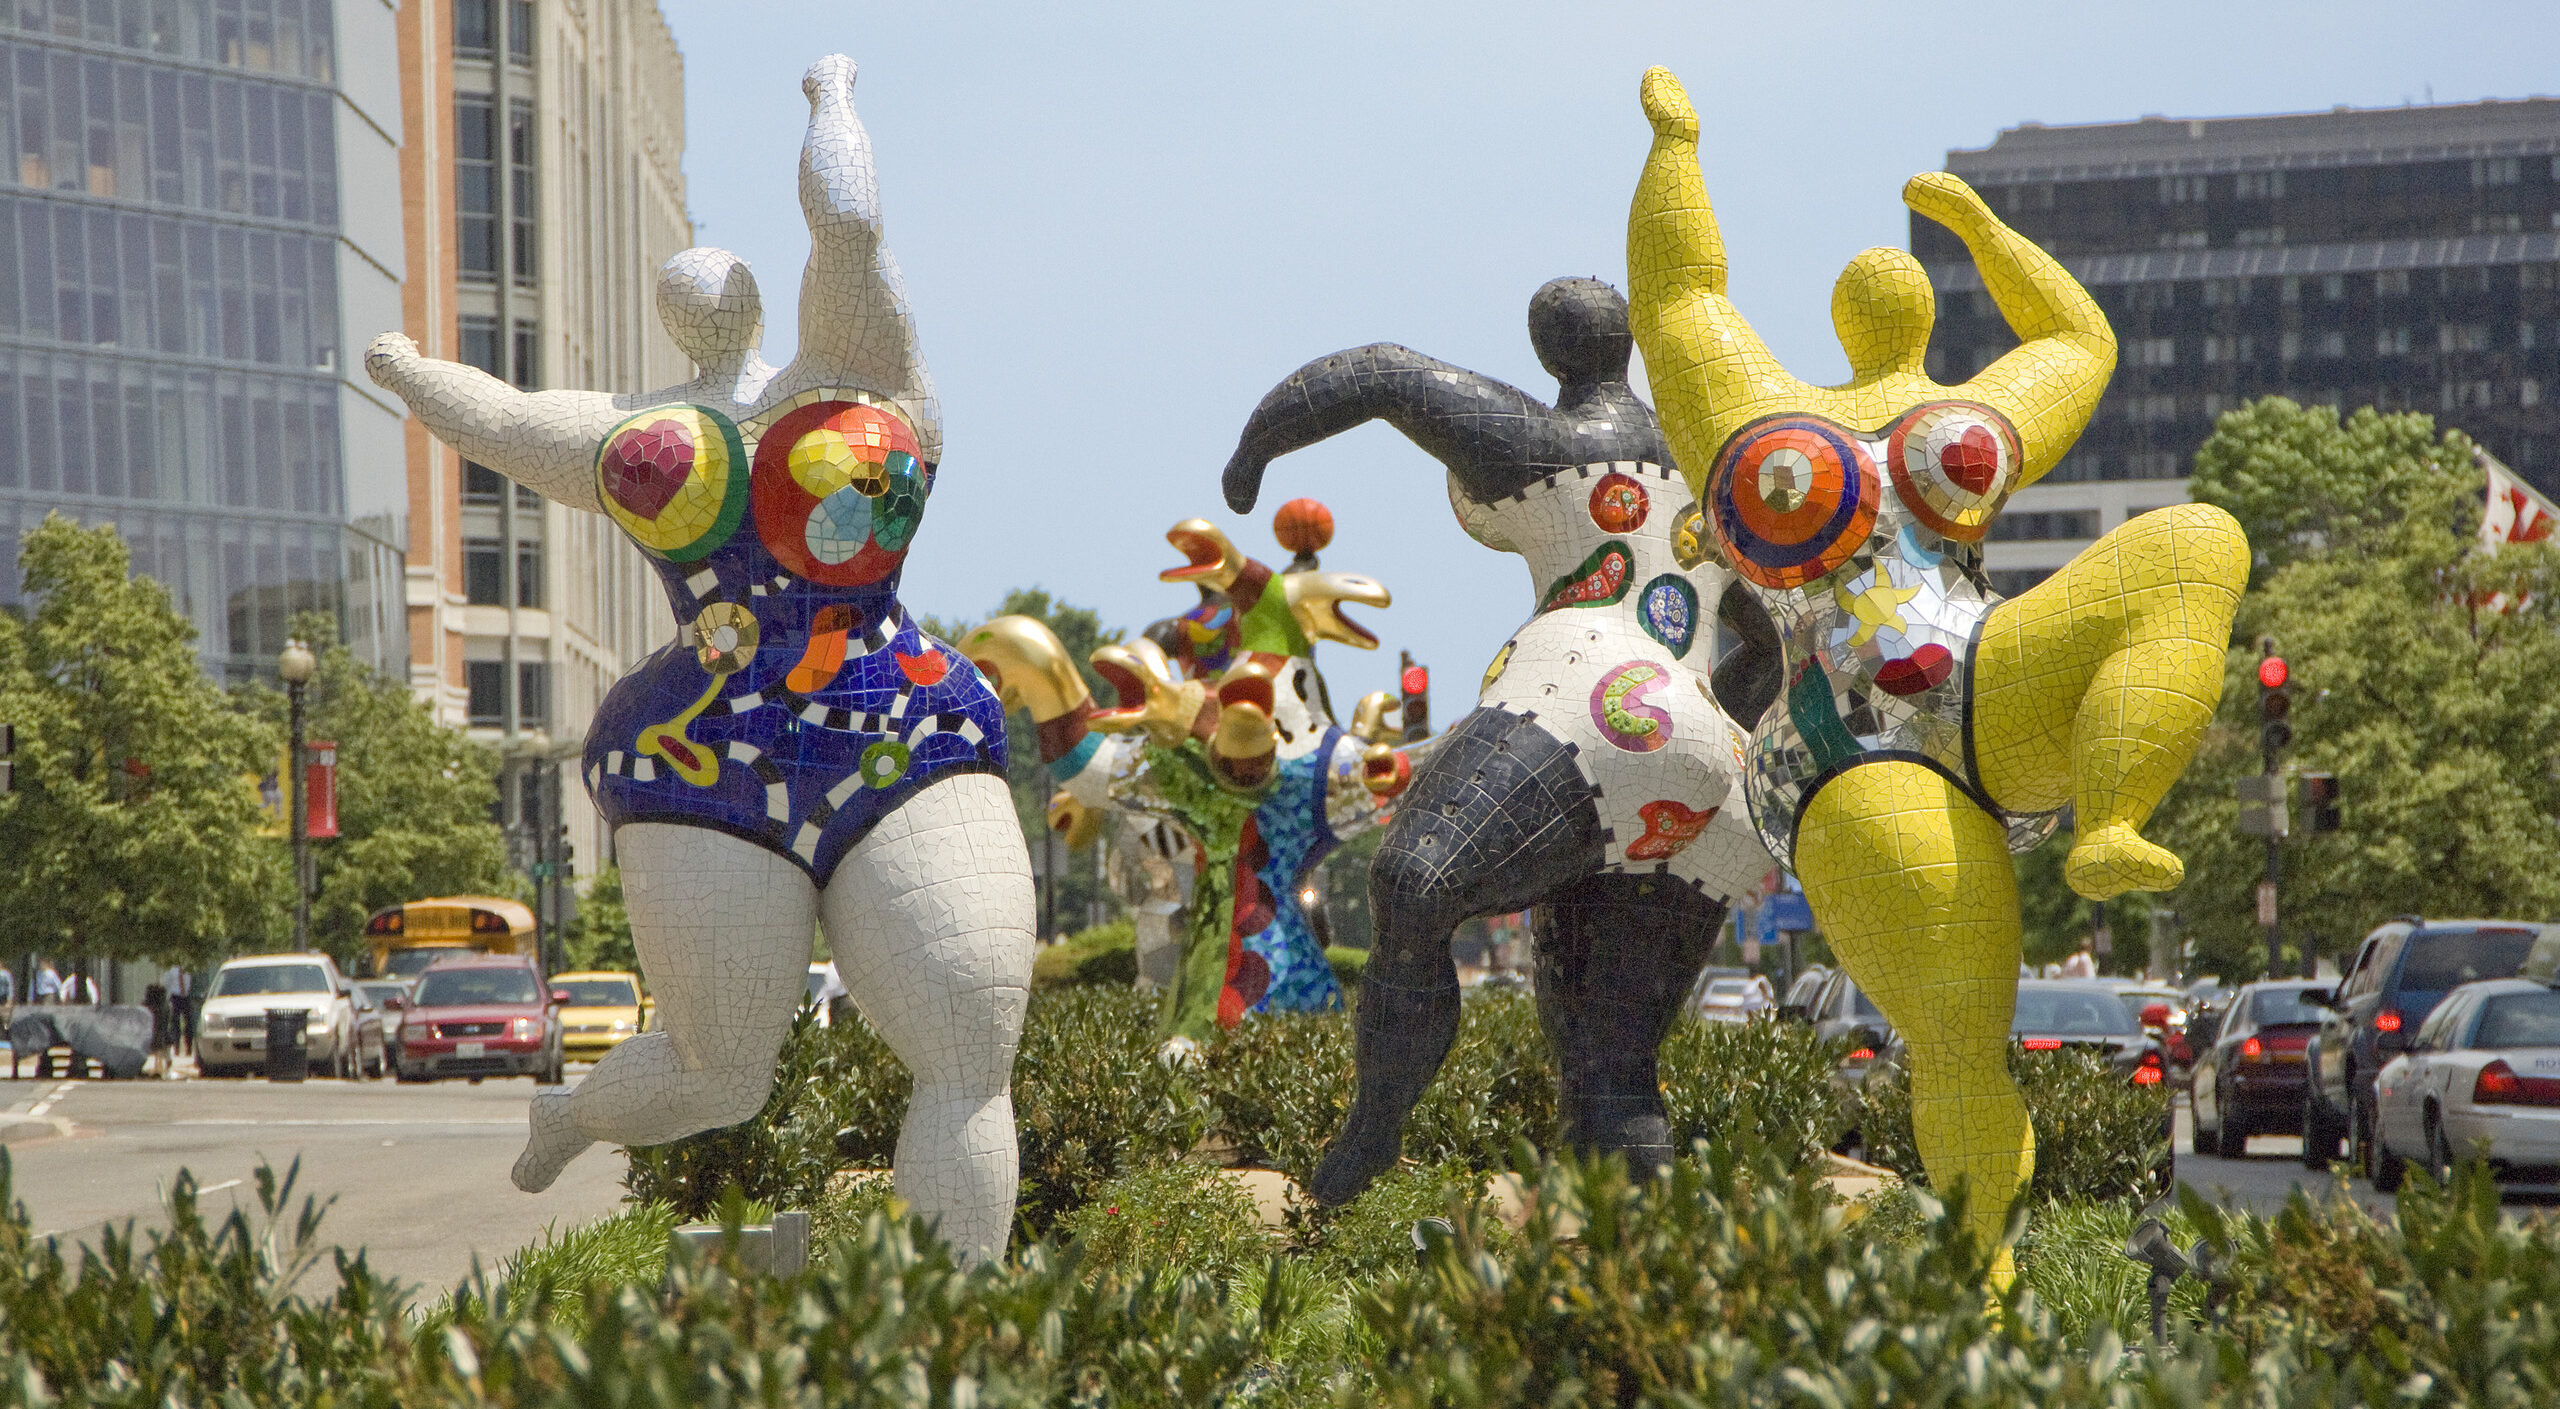 Three abstract outdoor sculptures of voluptuous figures covered in bright patterns and dancing with outstretched arms.